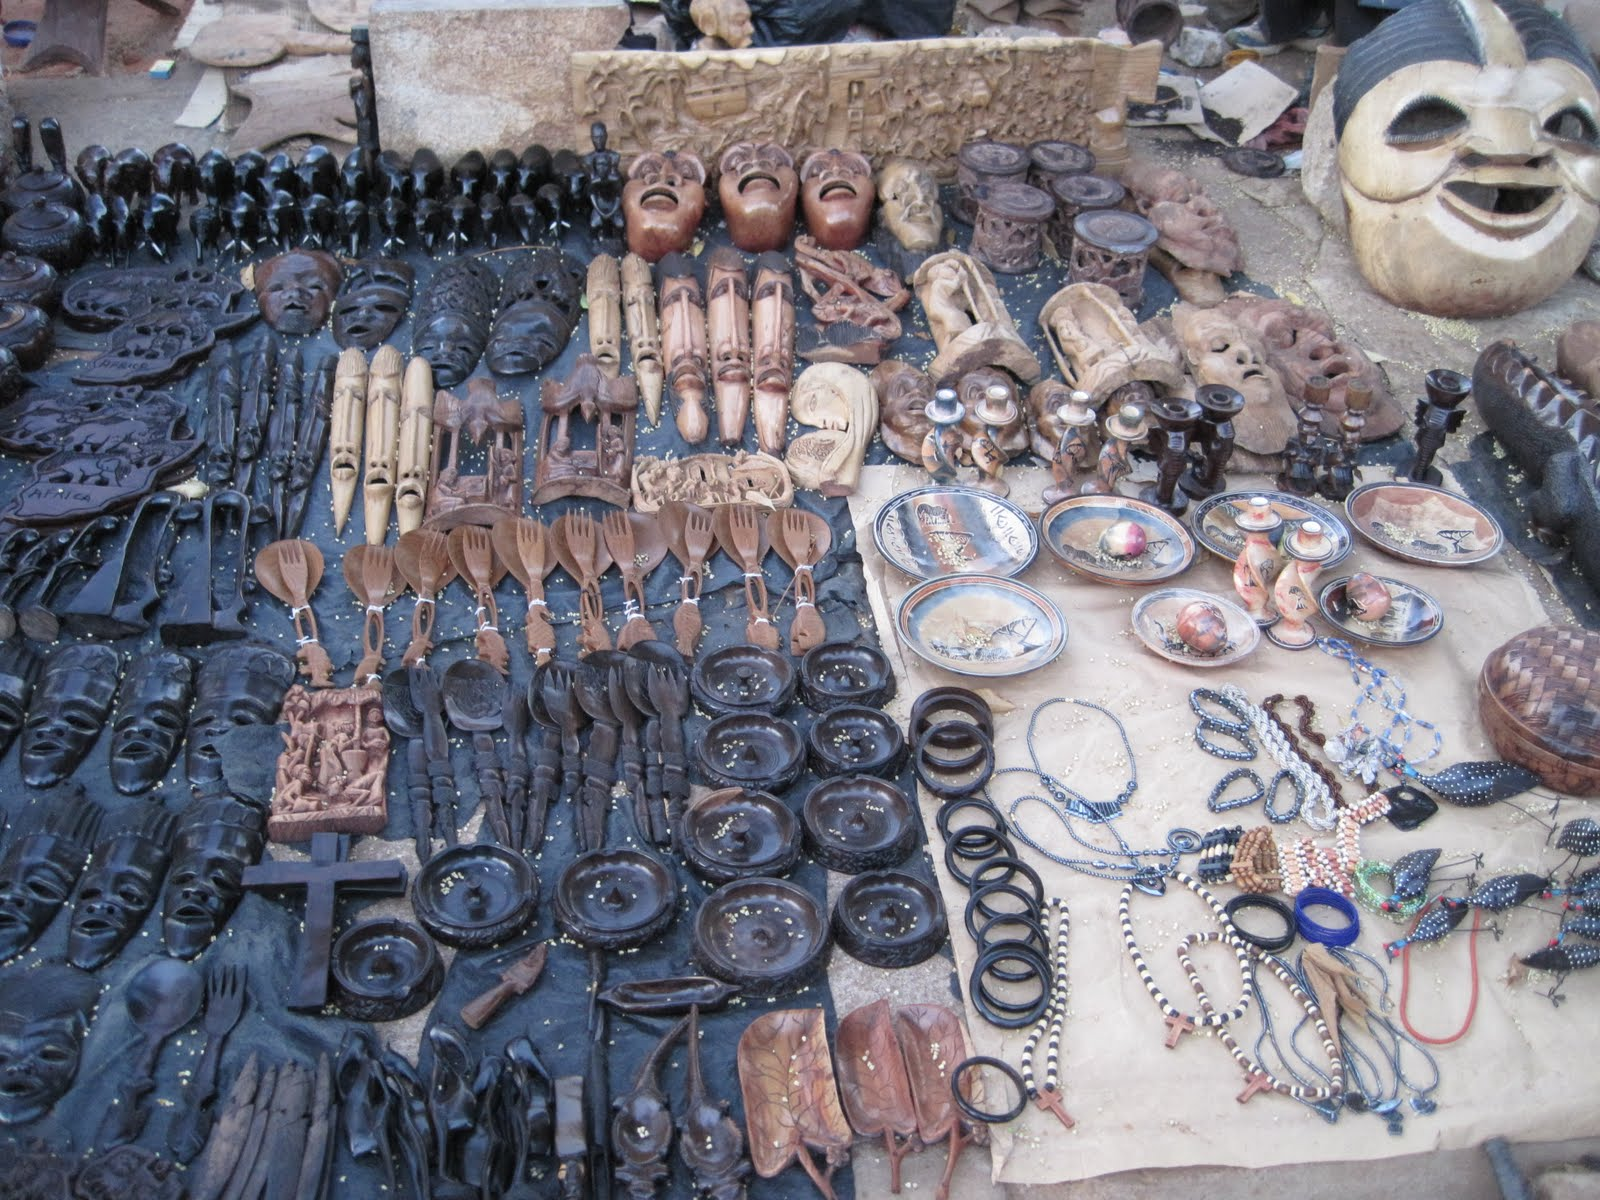 Africa lilongwe wood carving market